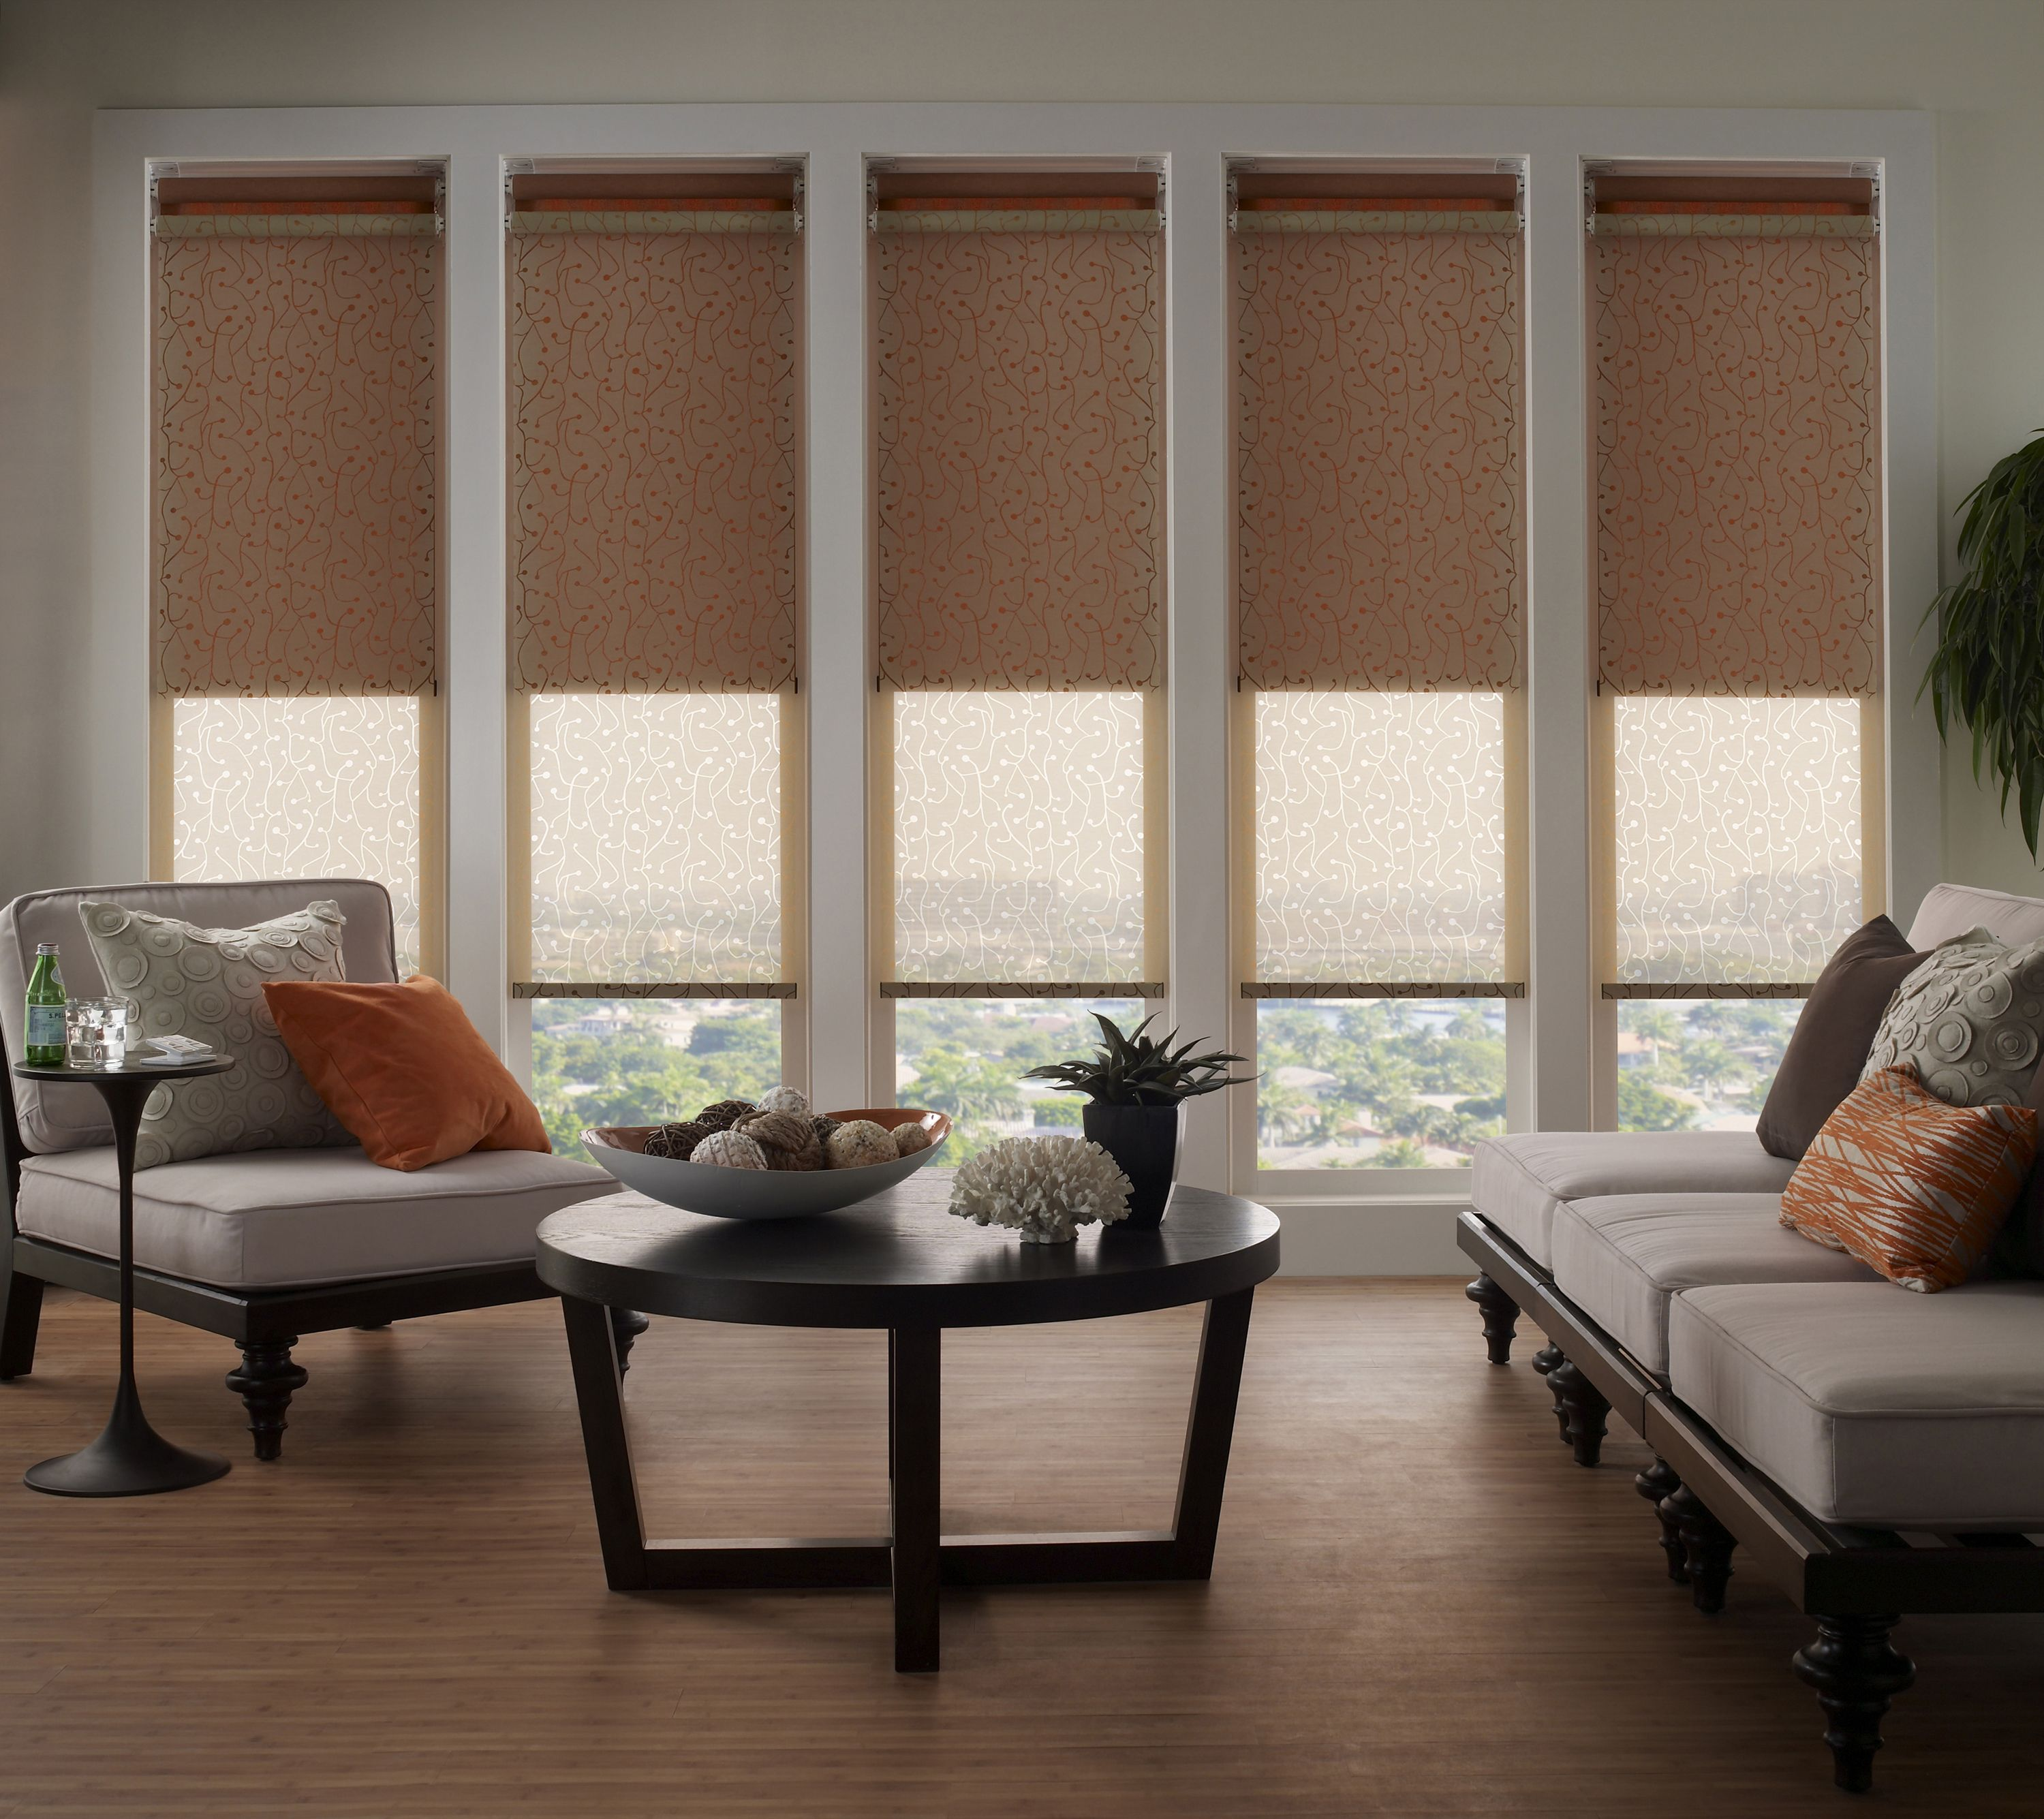 Lutron motorized roller shades dual shade blackout for Motorized blackout roller shades